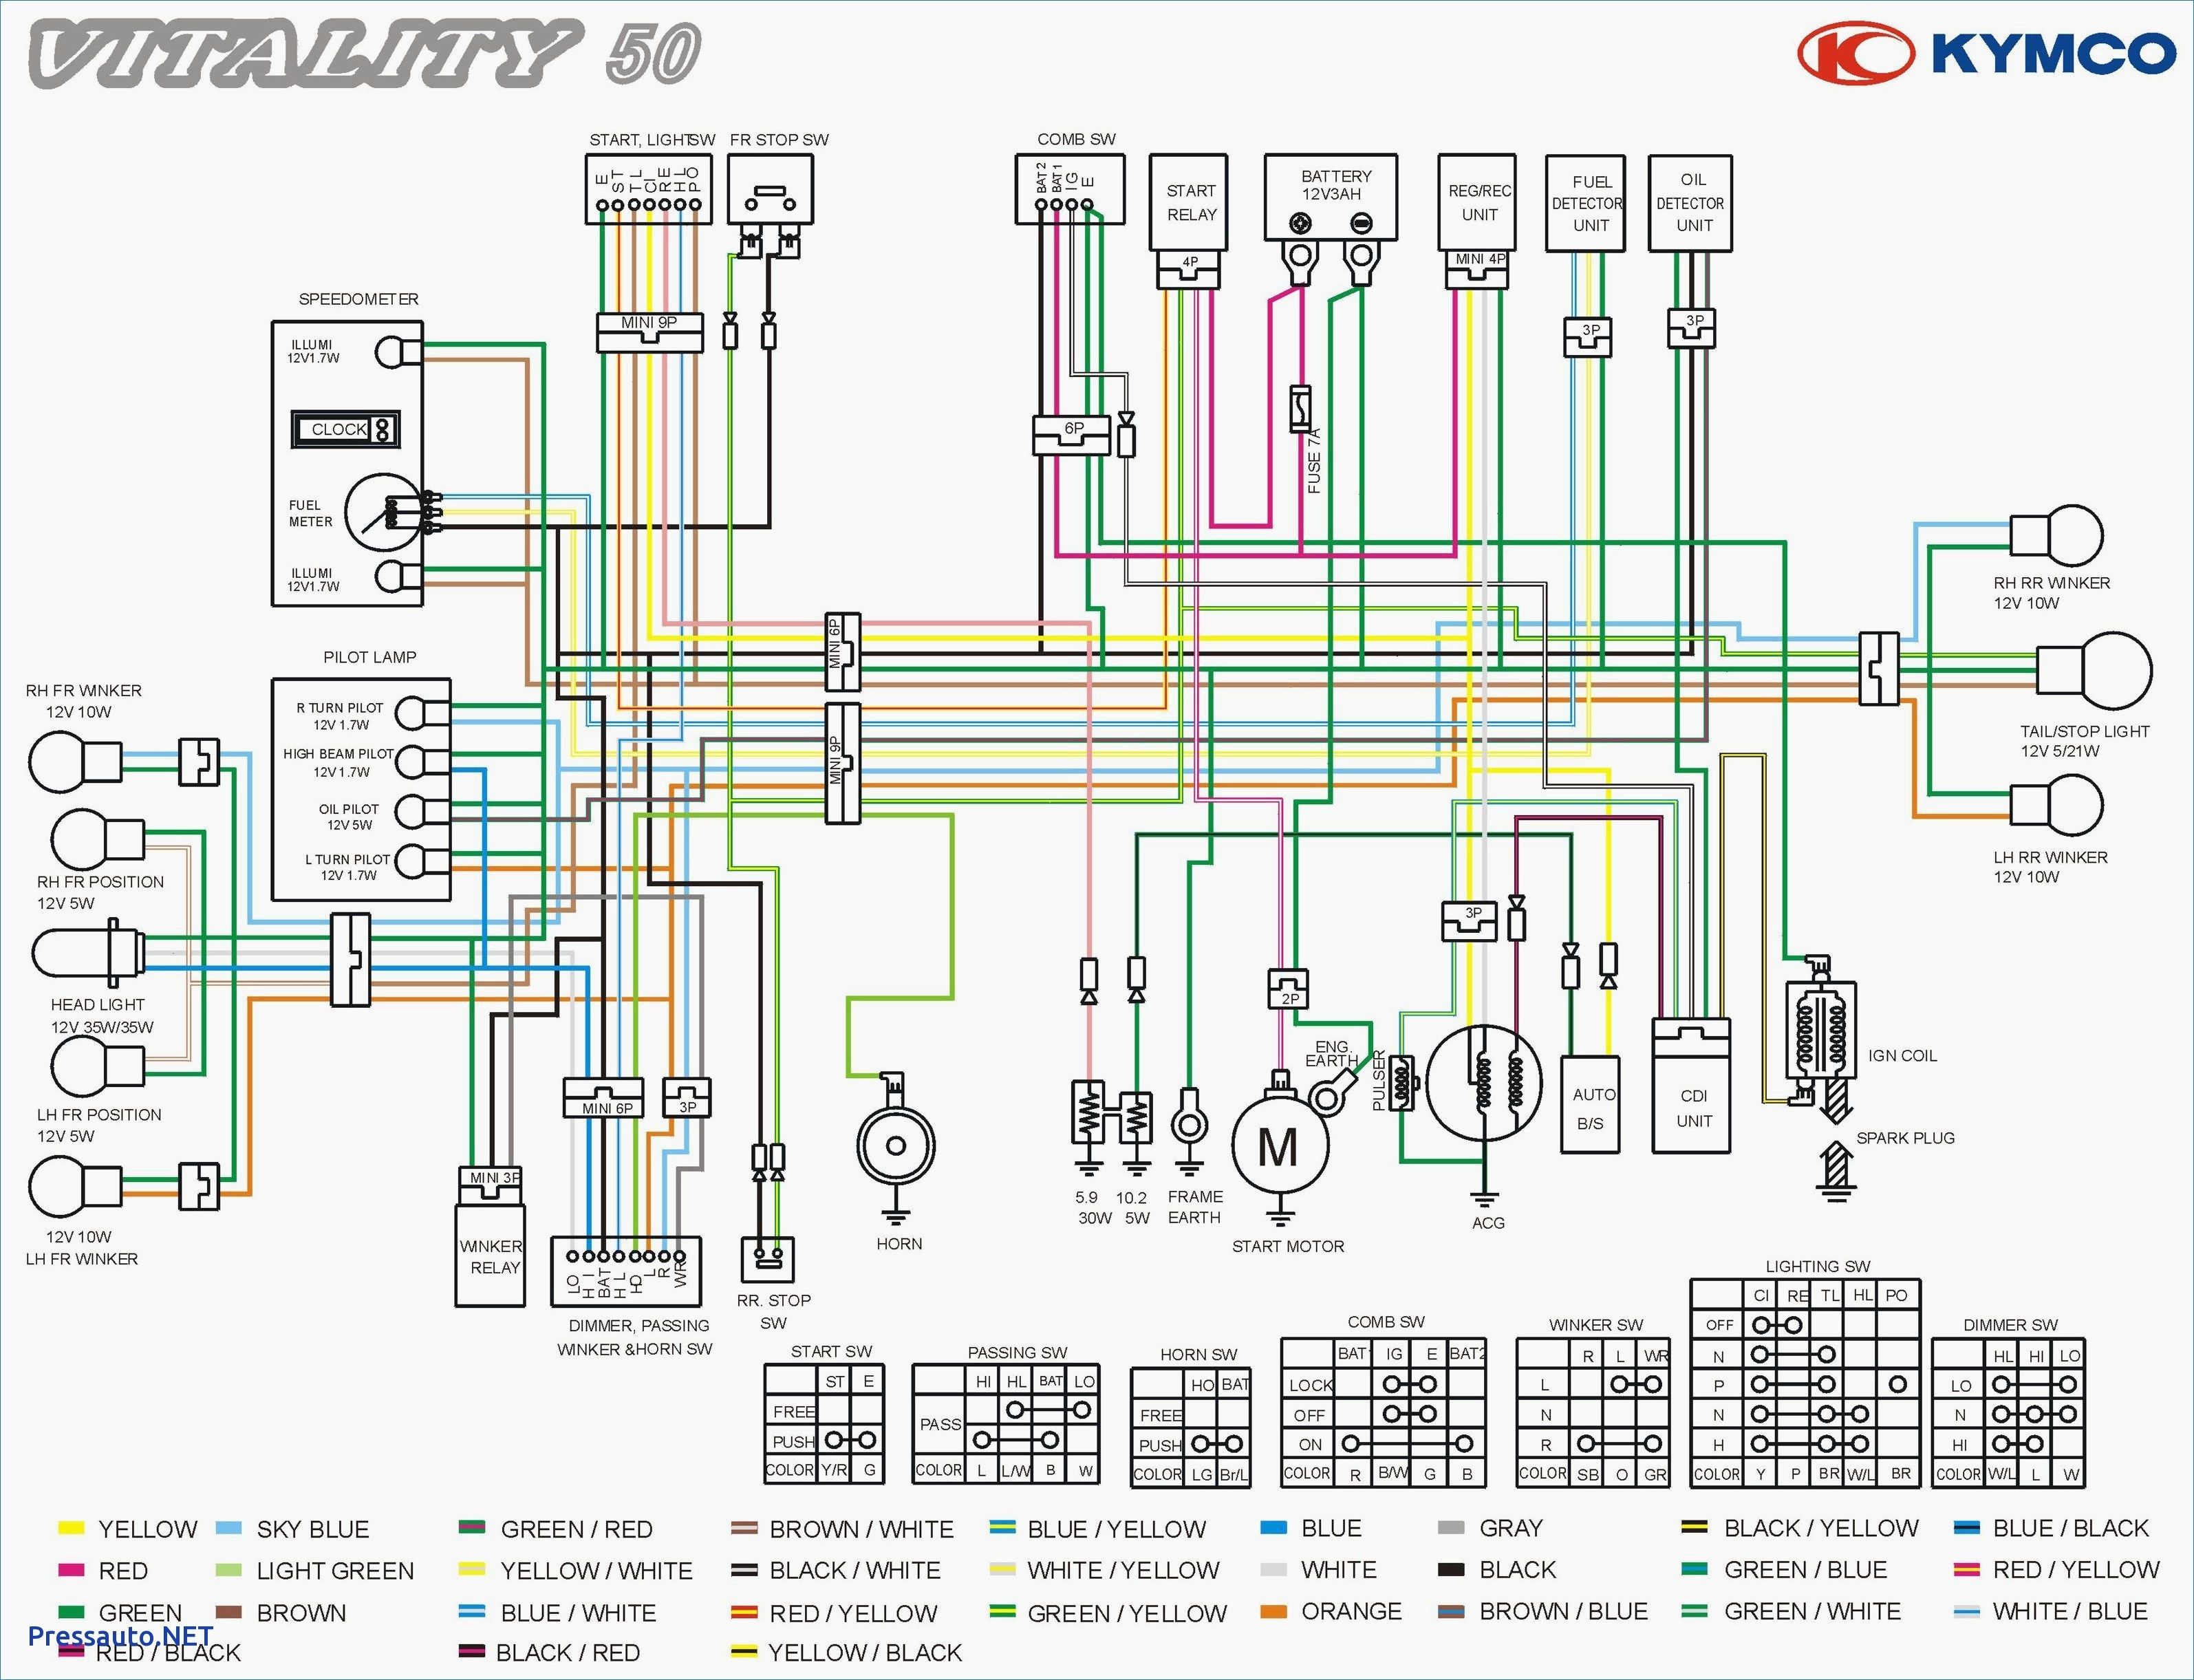 wiring diagram for kymco agility 50 download free and  https://pin.it/osvyqf8 | diagram, free download, download  pinterest